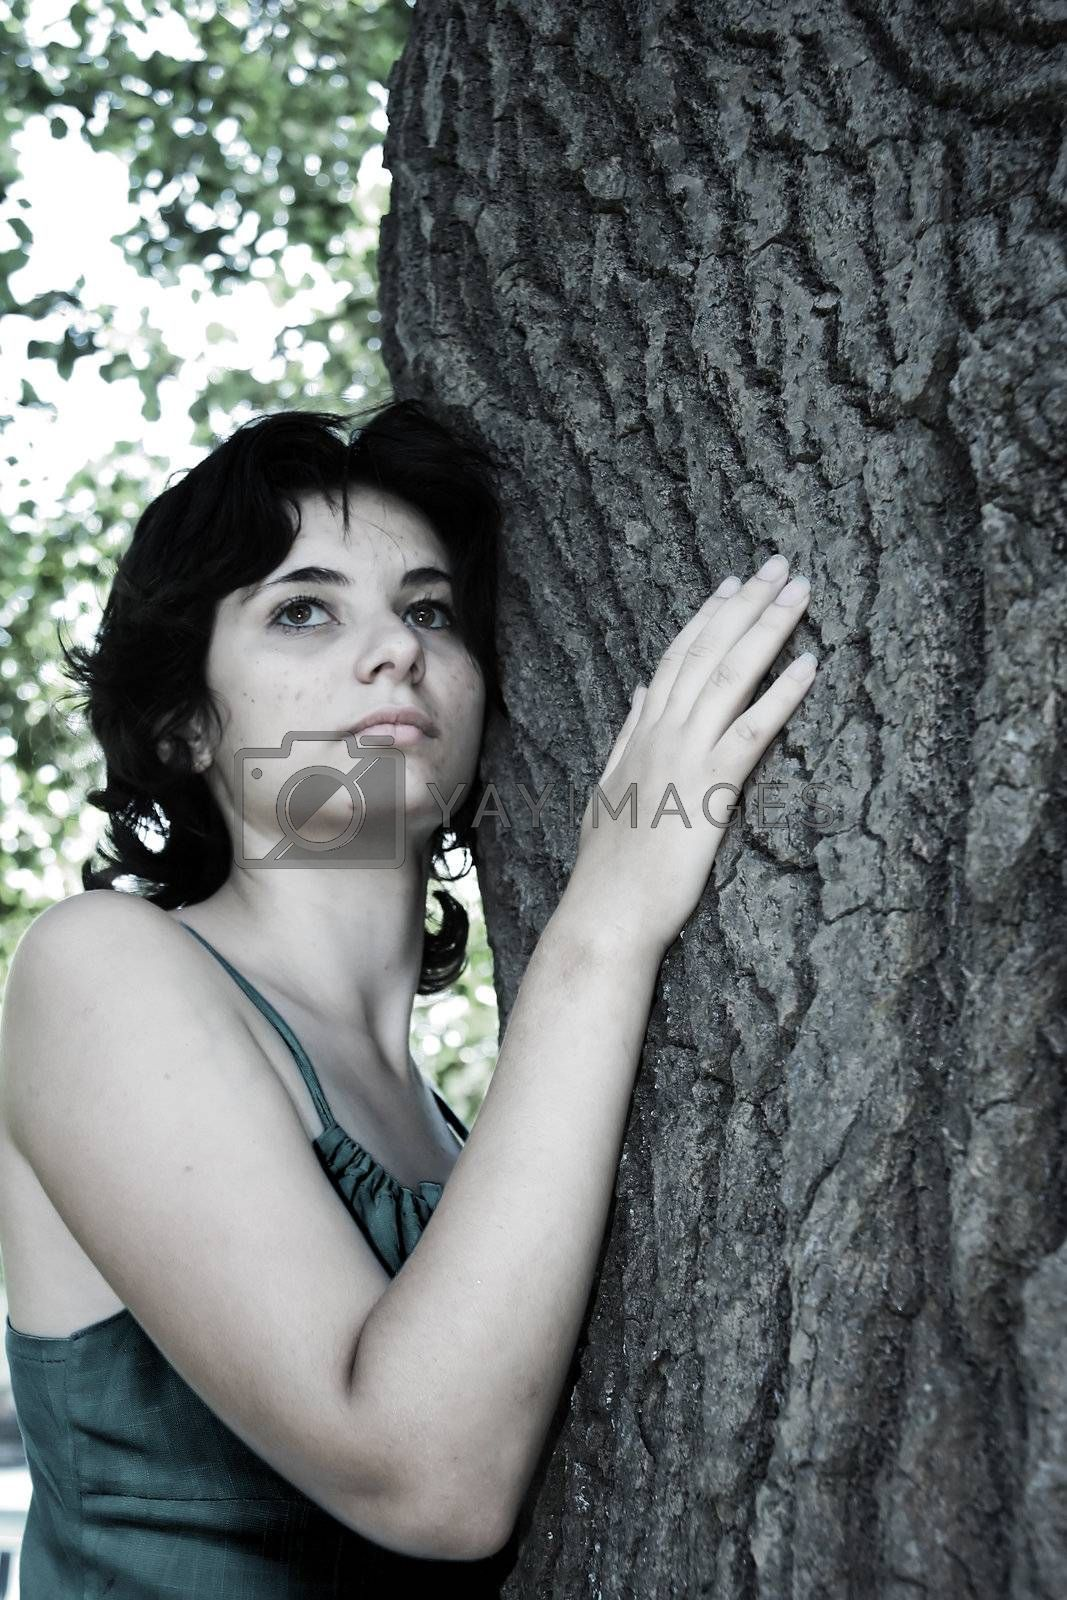 The beautiful girl has embraced a tree